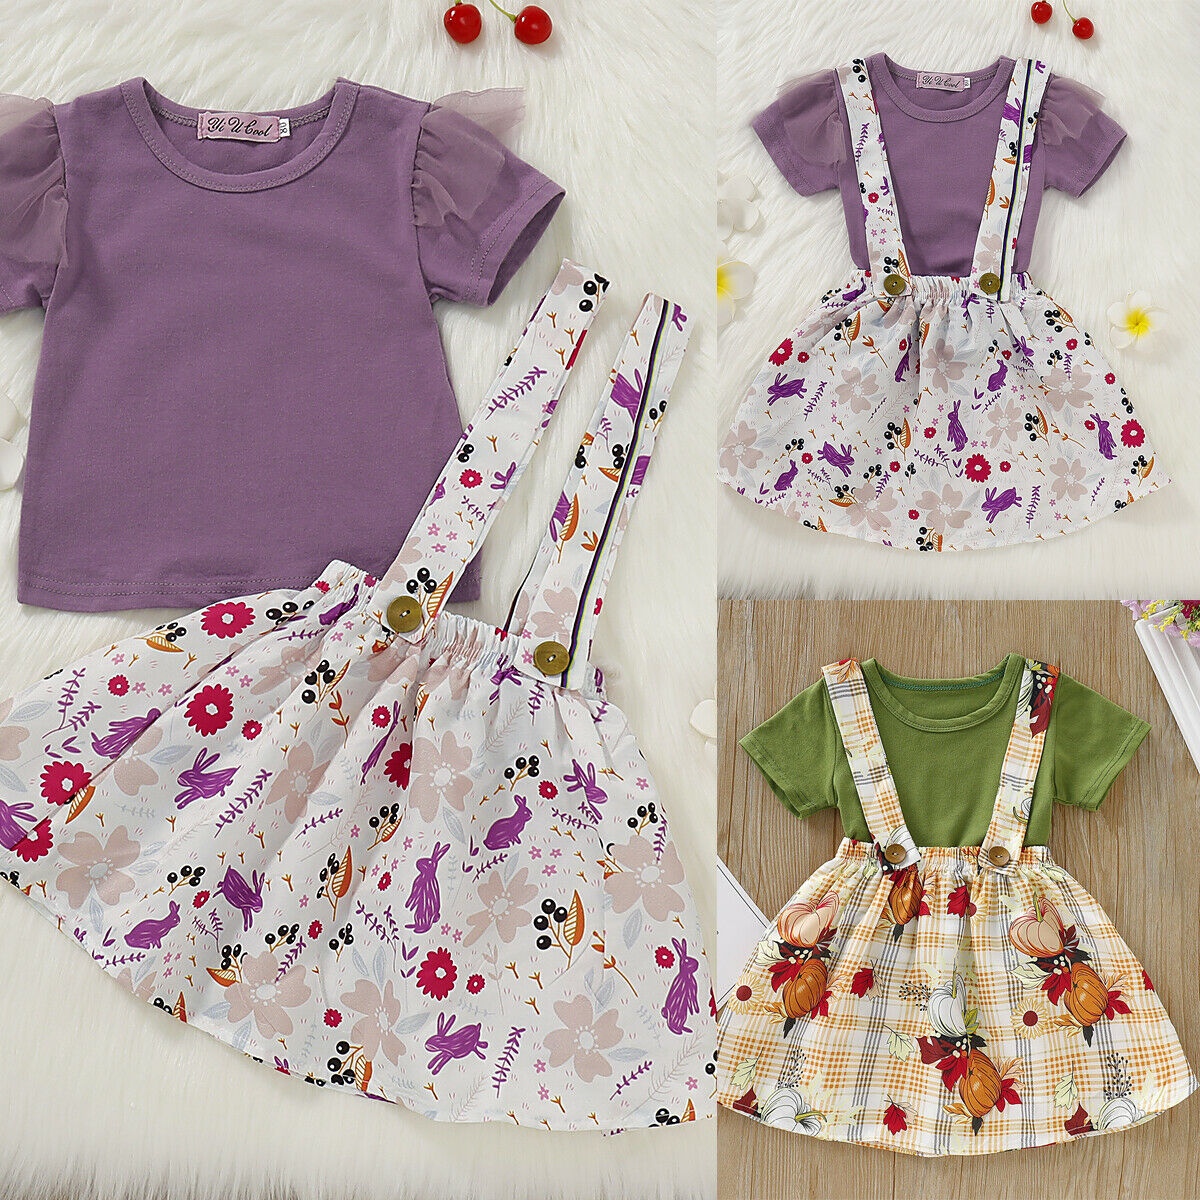 Imute 2019 Newest Fashion Toddler Kid Baby Girl Summer Causal Short Sleeve Blouse Tops Floral <font><b>Bib</b></font> <font><b>Skirt</b></font> 2Pcs Outfits Set Clothes image